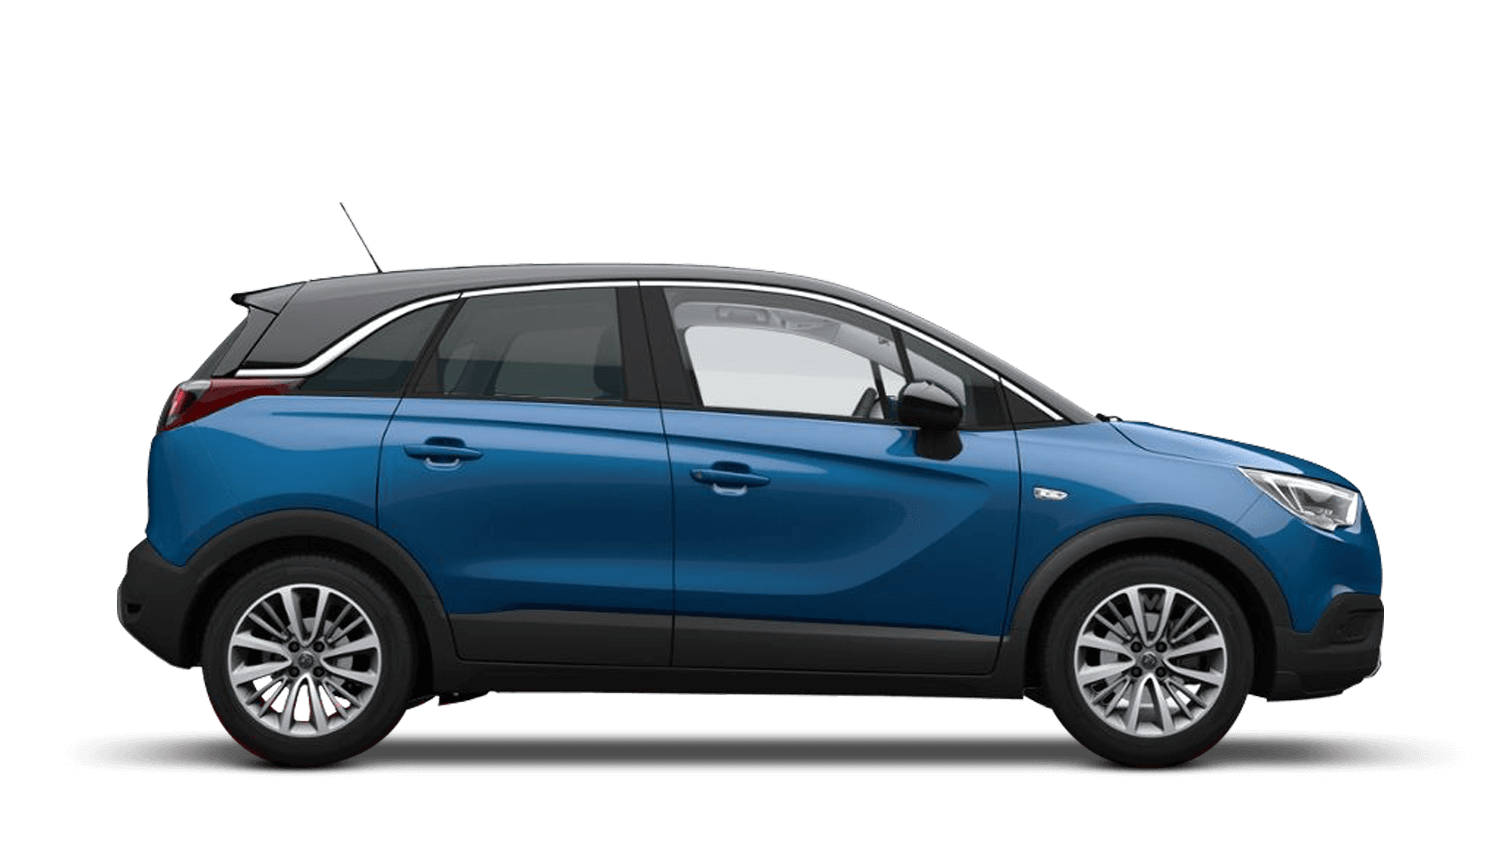 Persian Blue (Metallic) Vauxhall Crossland X